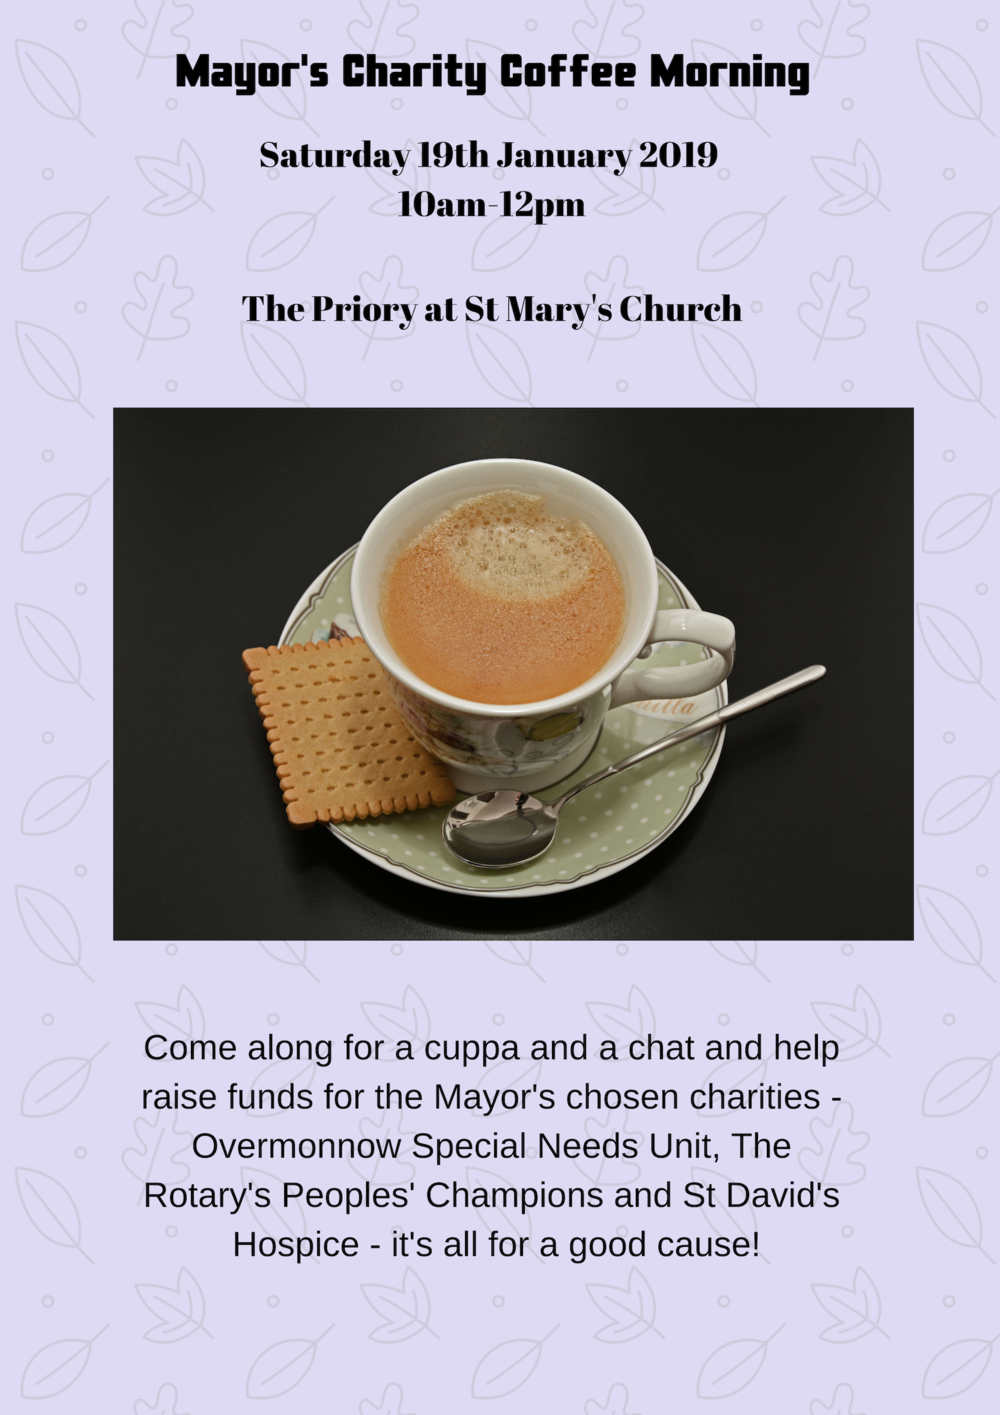 Mayor's Charity Coffee Morning.png